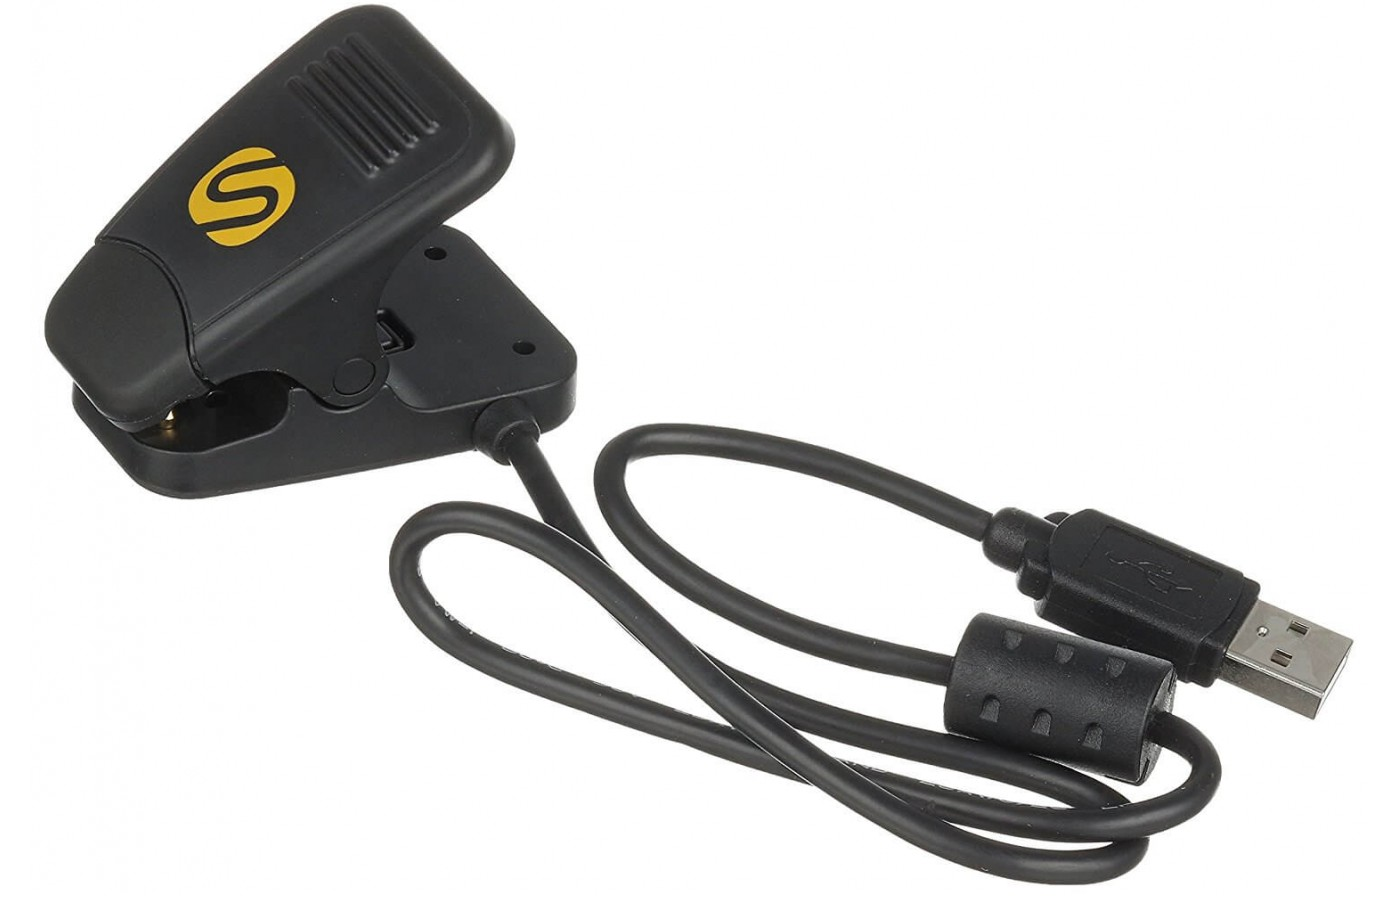 The Soleus GPS Fit 1.0 charges via USB